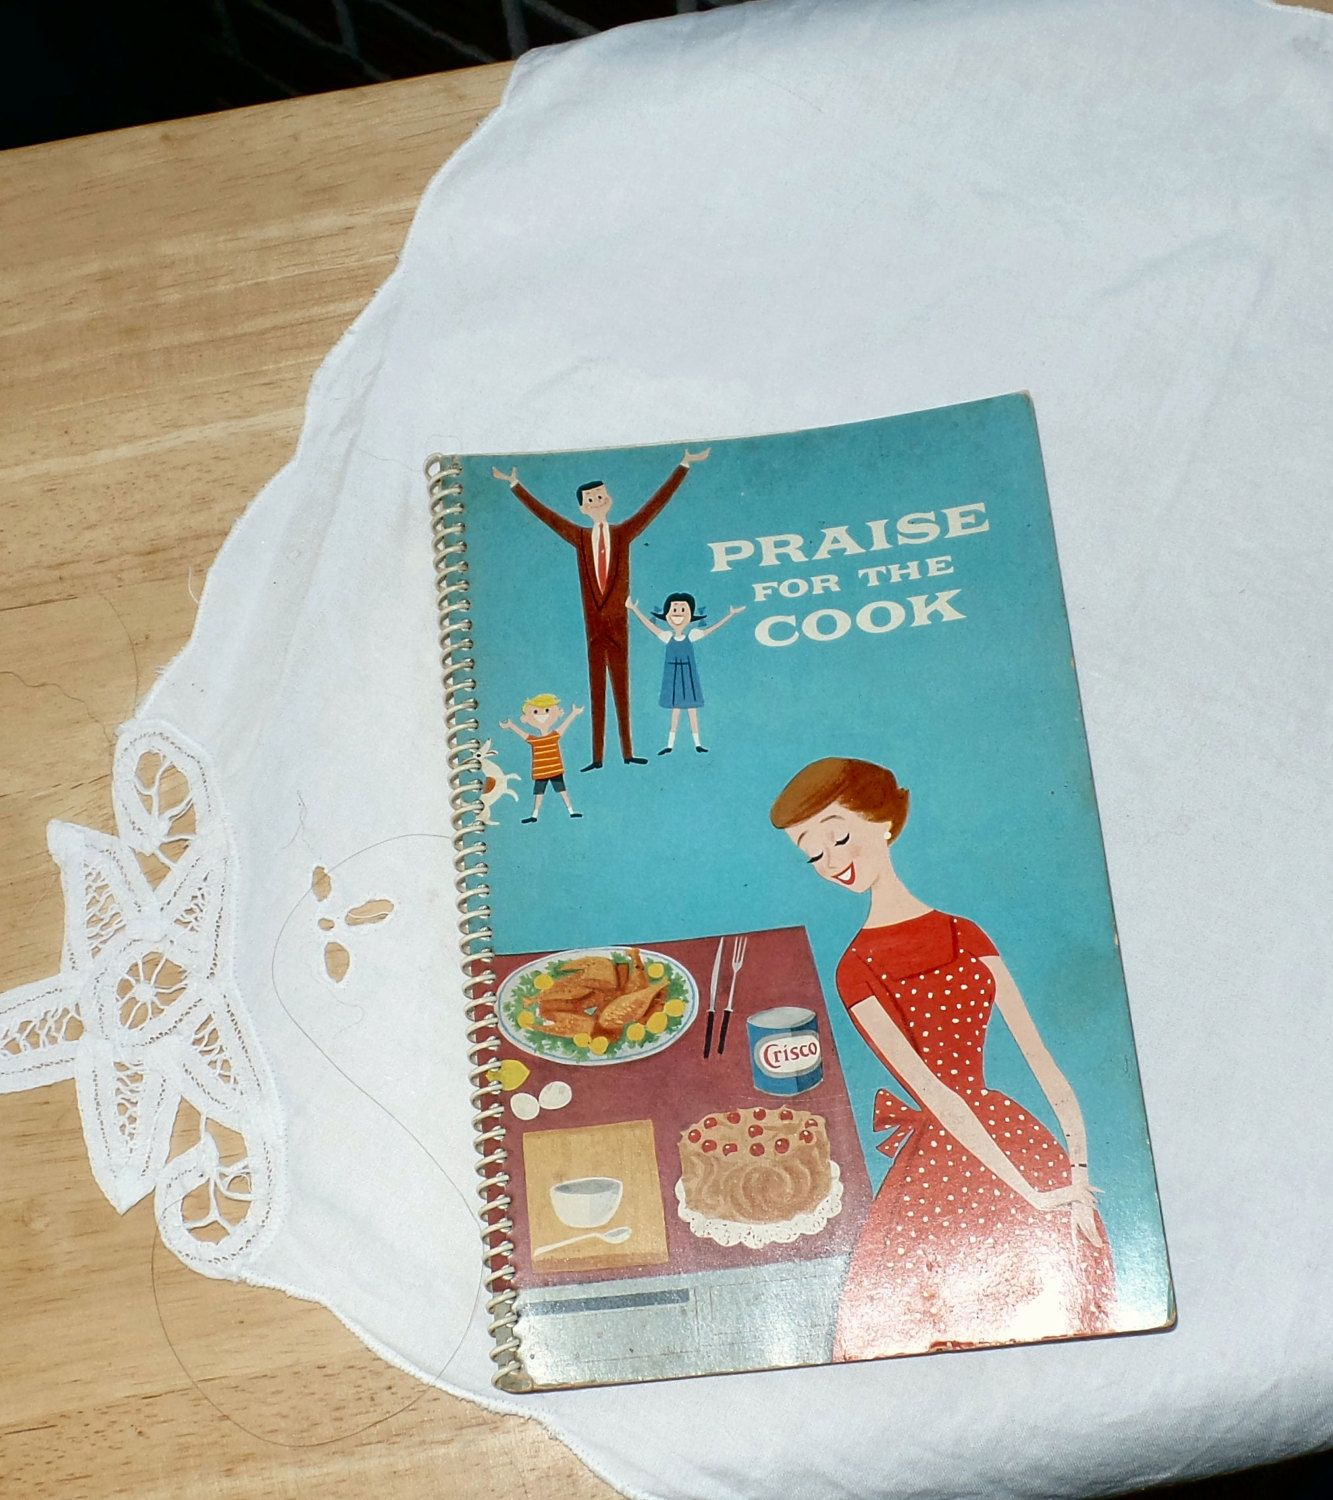 Cookbook, Recipe Book, Praise for the Cook, Crisco Cook Book, Kitchen Tested, Appetizers, Main Courses, Sauces, Freezing, Instruction Book by SierrasTreasure on Etsy